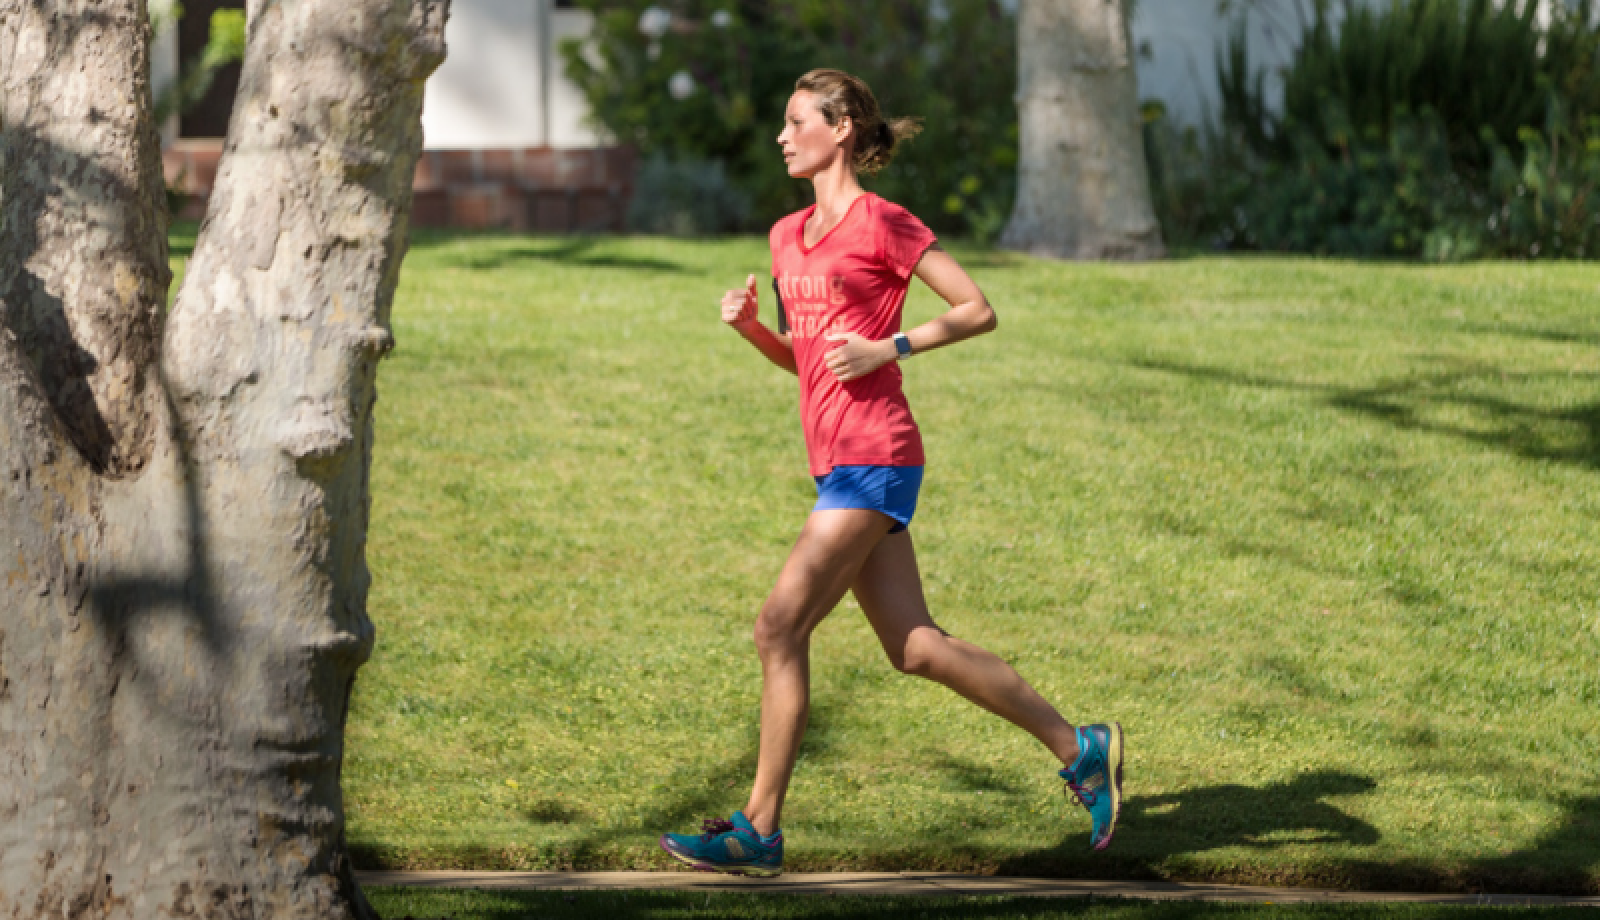 Black Friday Car Deals >> Christy Turlington Burns Breaks Personal Record at London Marathon - MacRumors